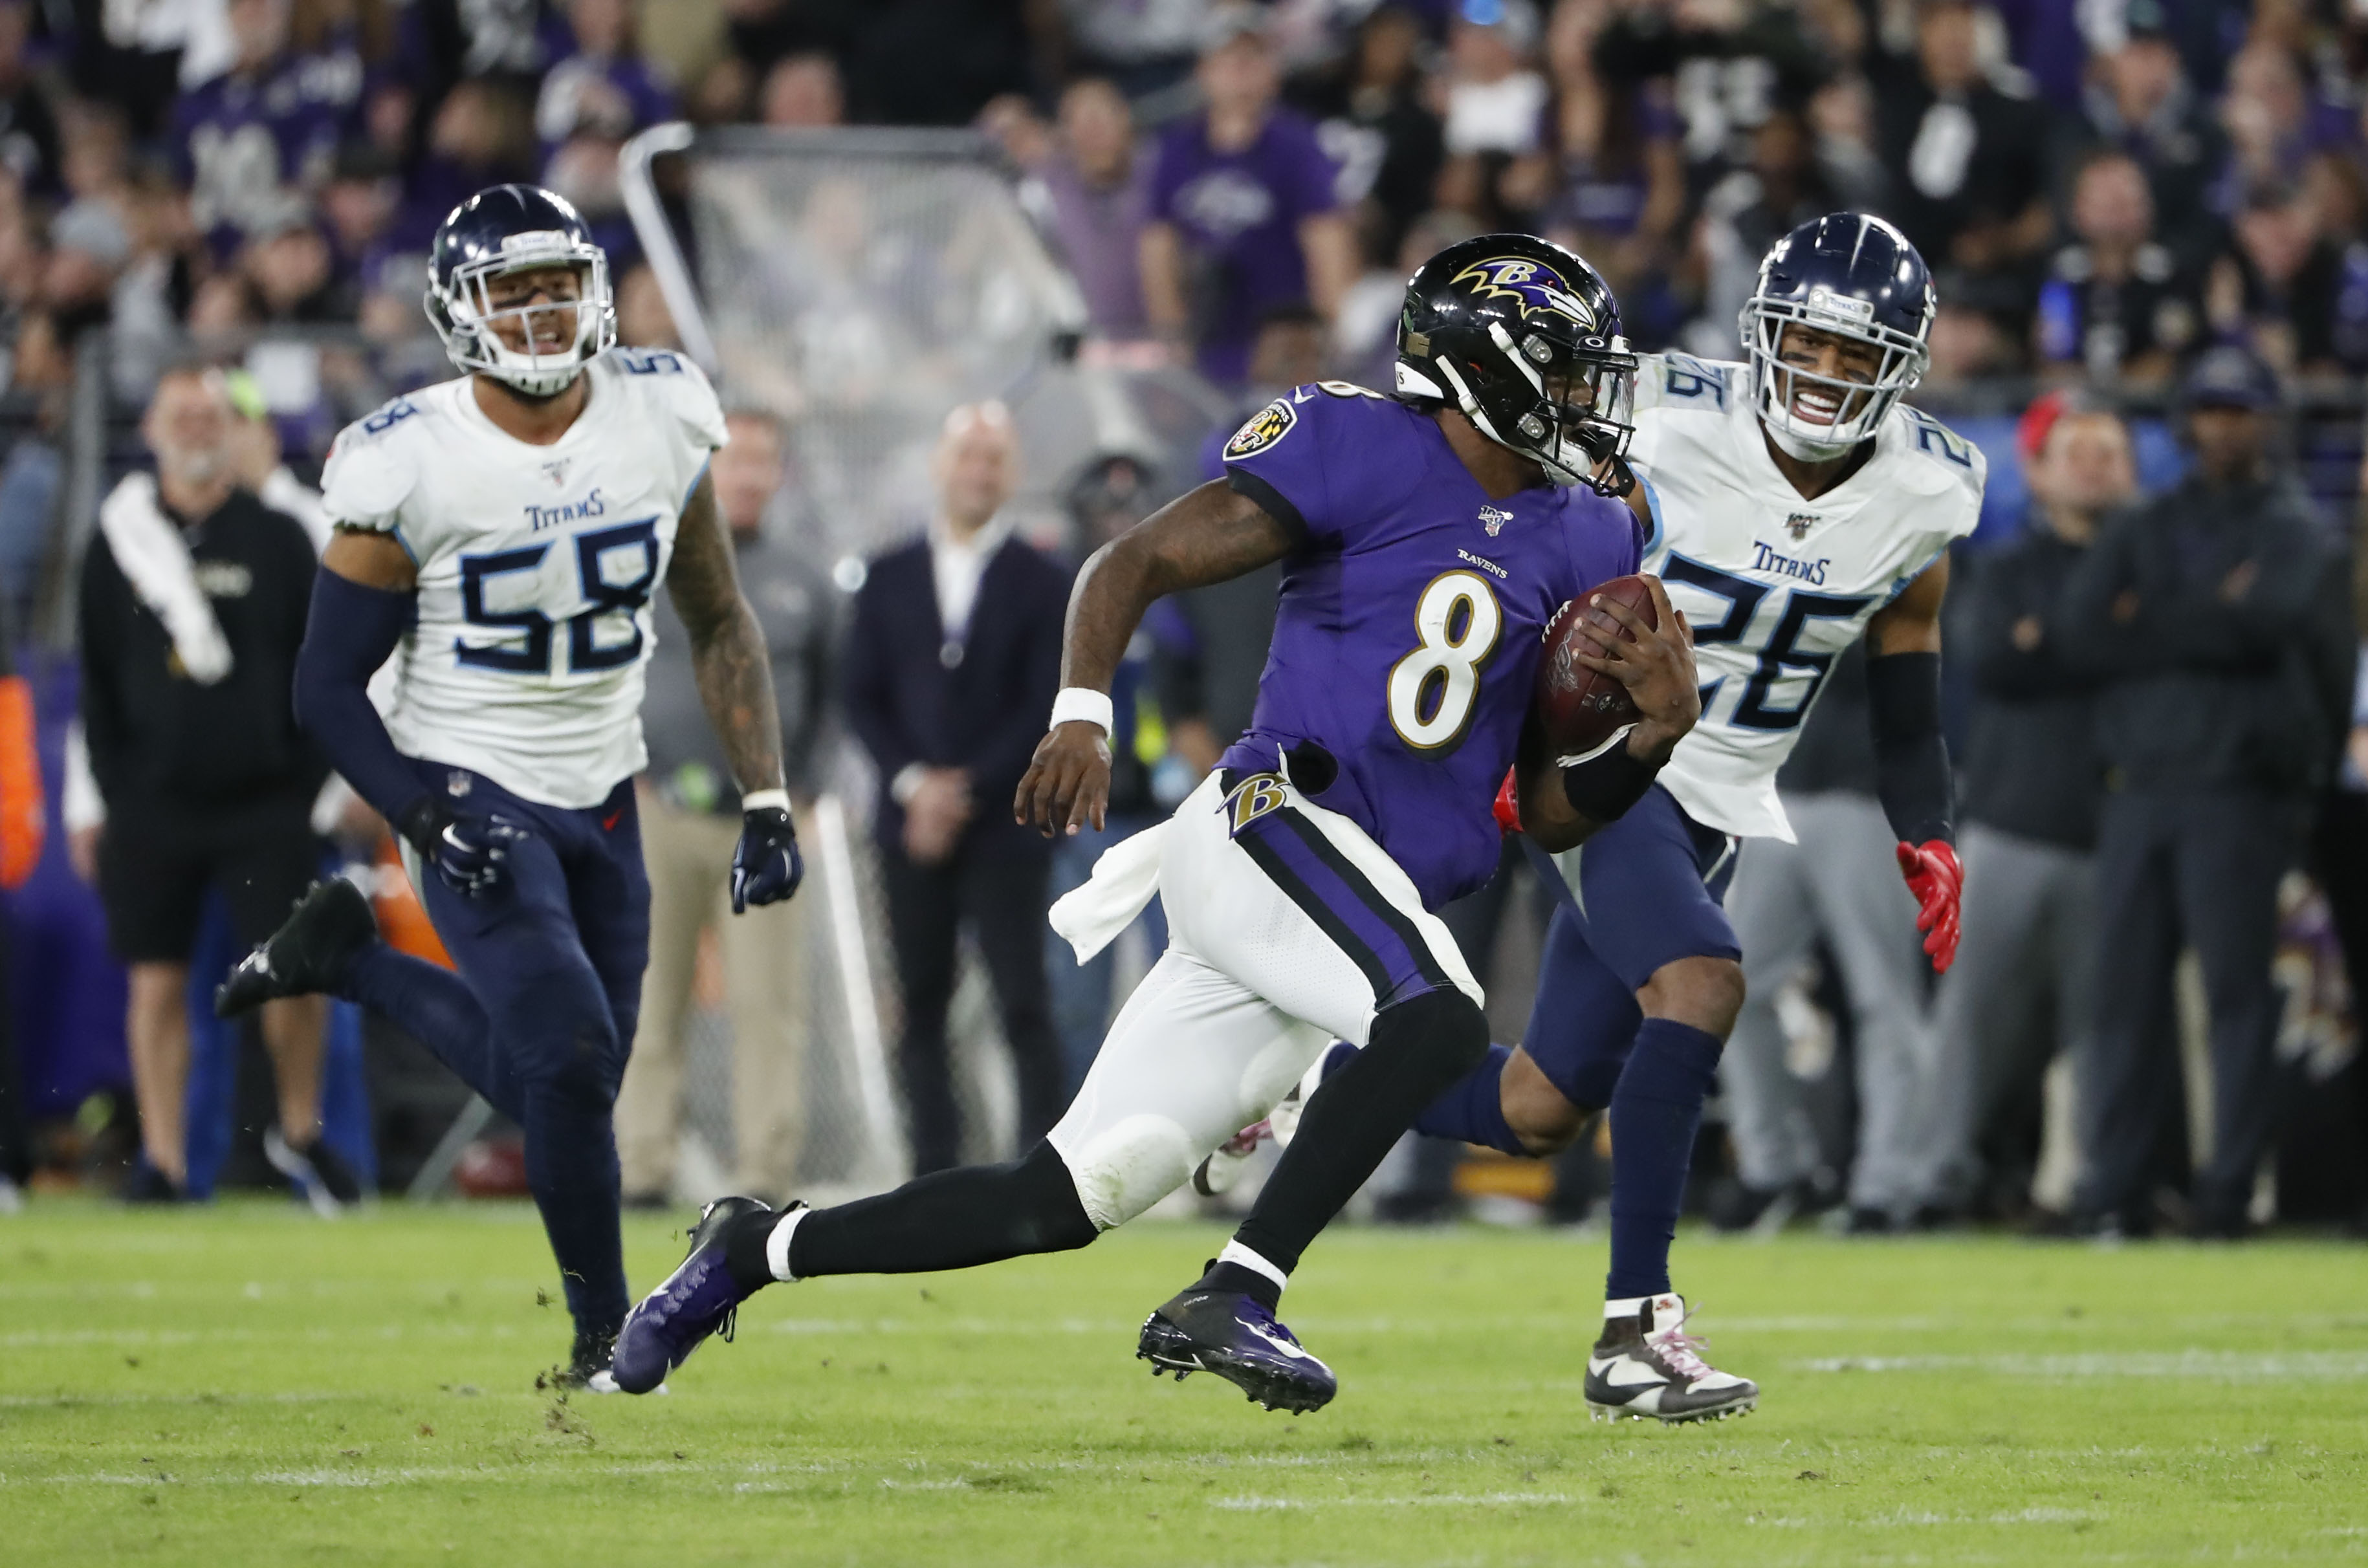 Harbaugh Reflects on Playoff Loss, Grounded Running Game